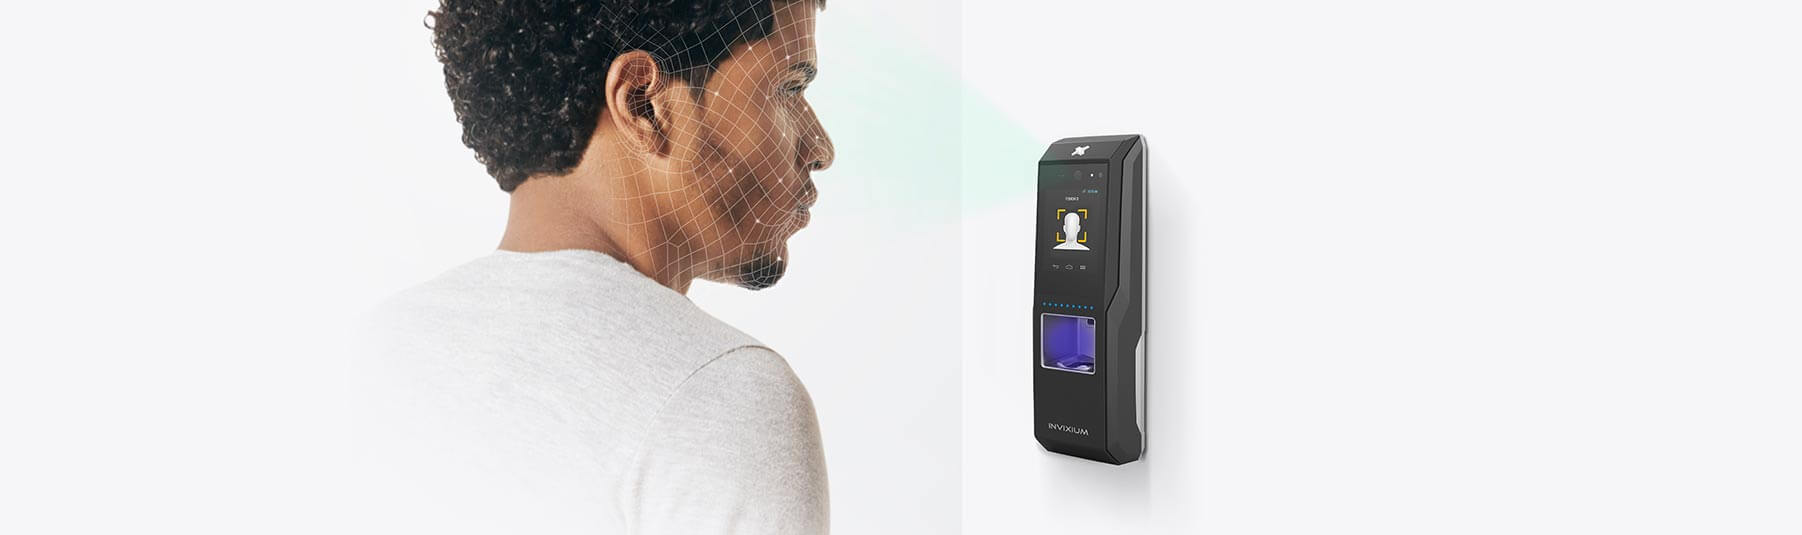 Touchless-access-control-solution